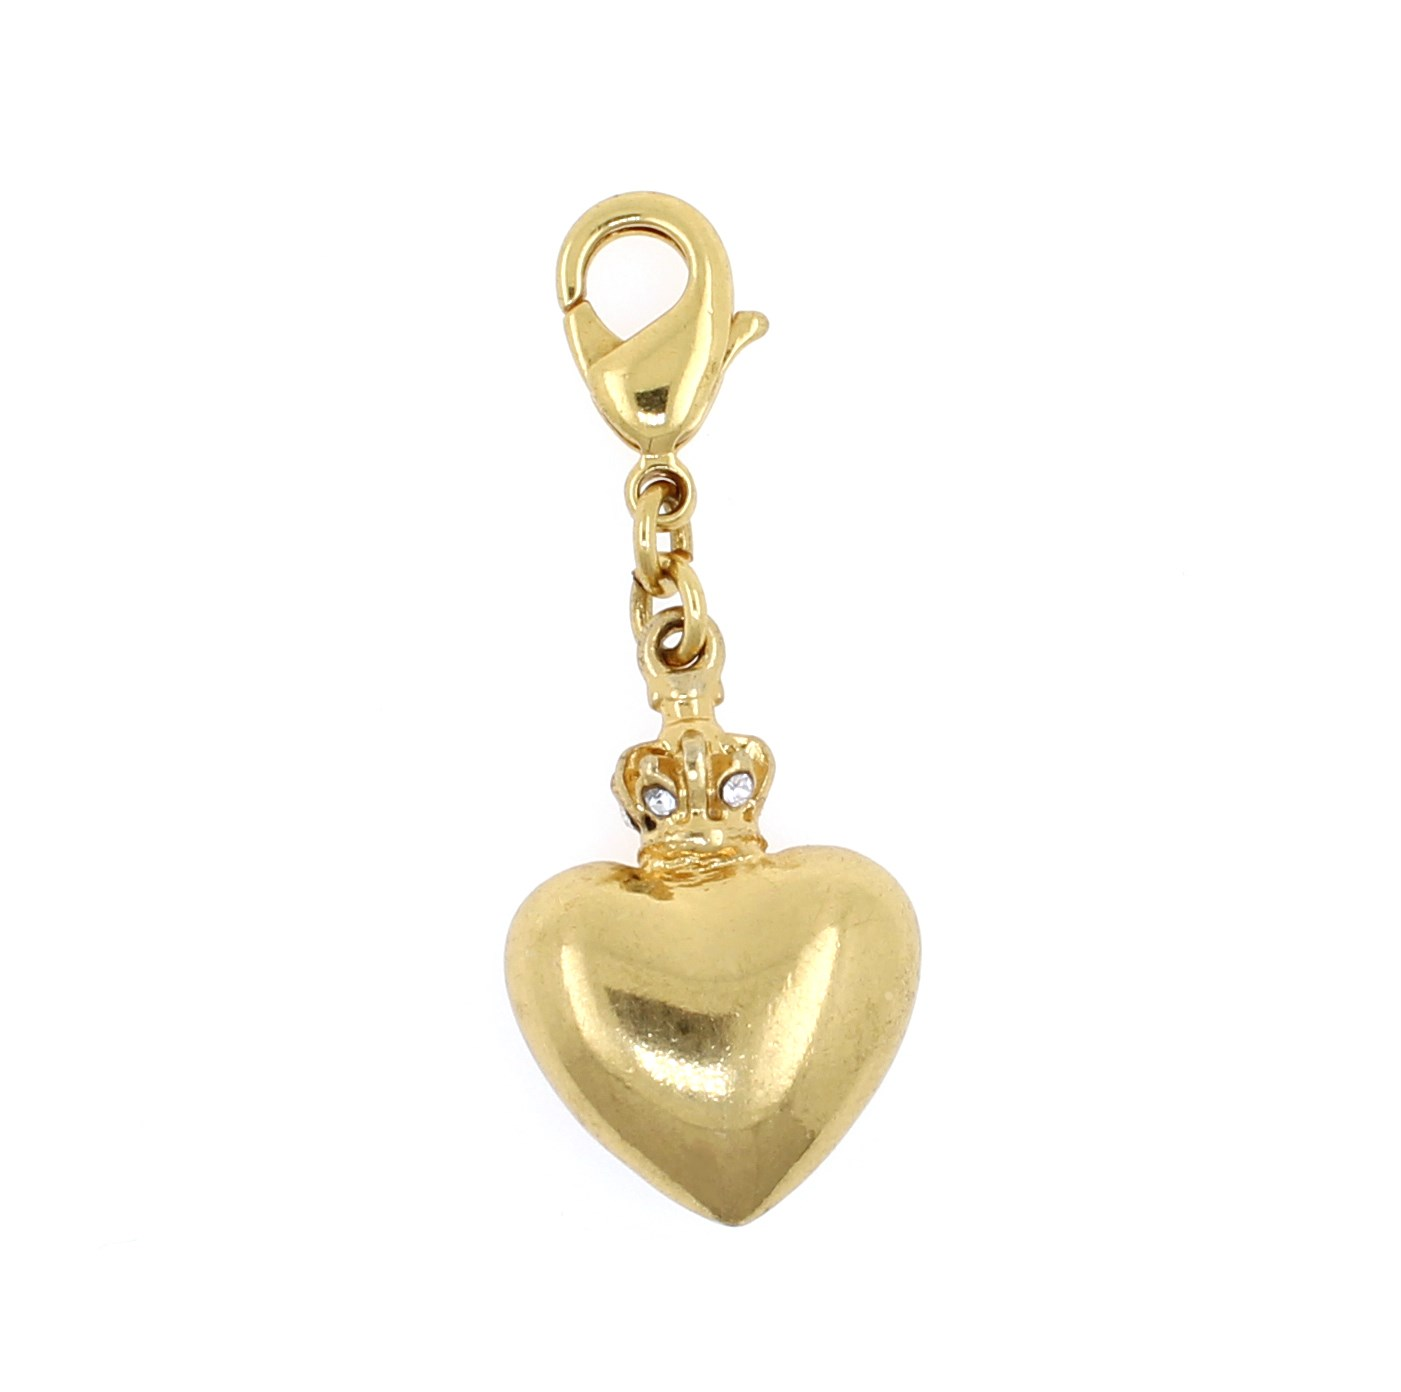 PILGRIM - Puffed Heart & Crown Charm - Clear/Gold Plate BNWT